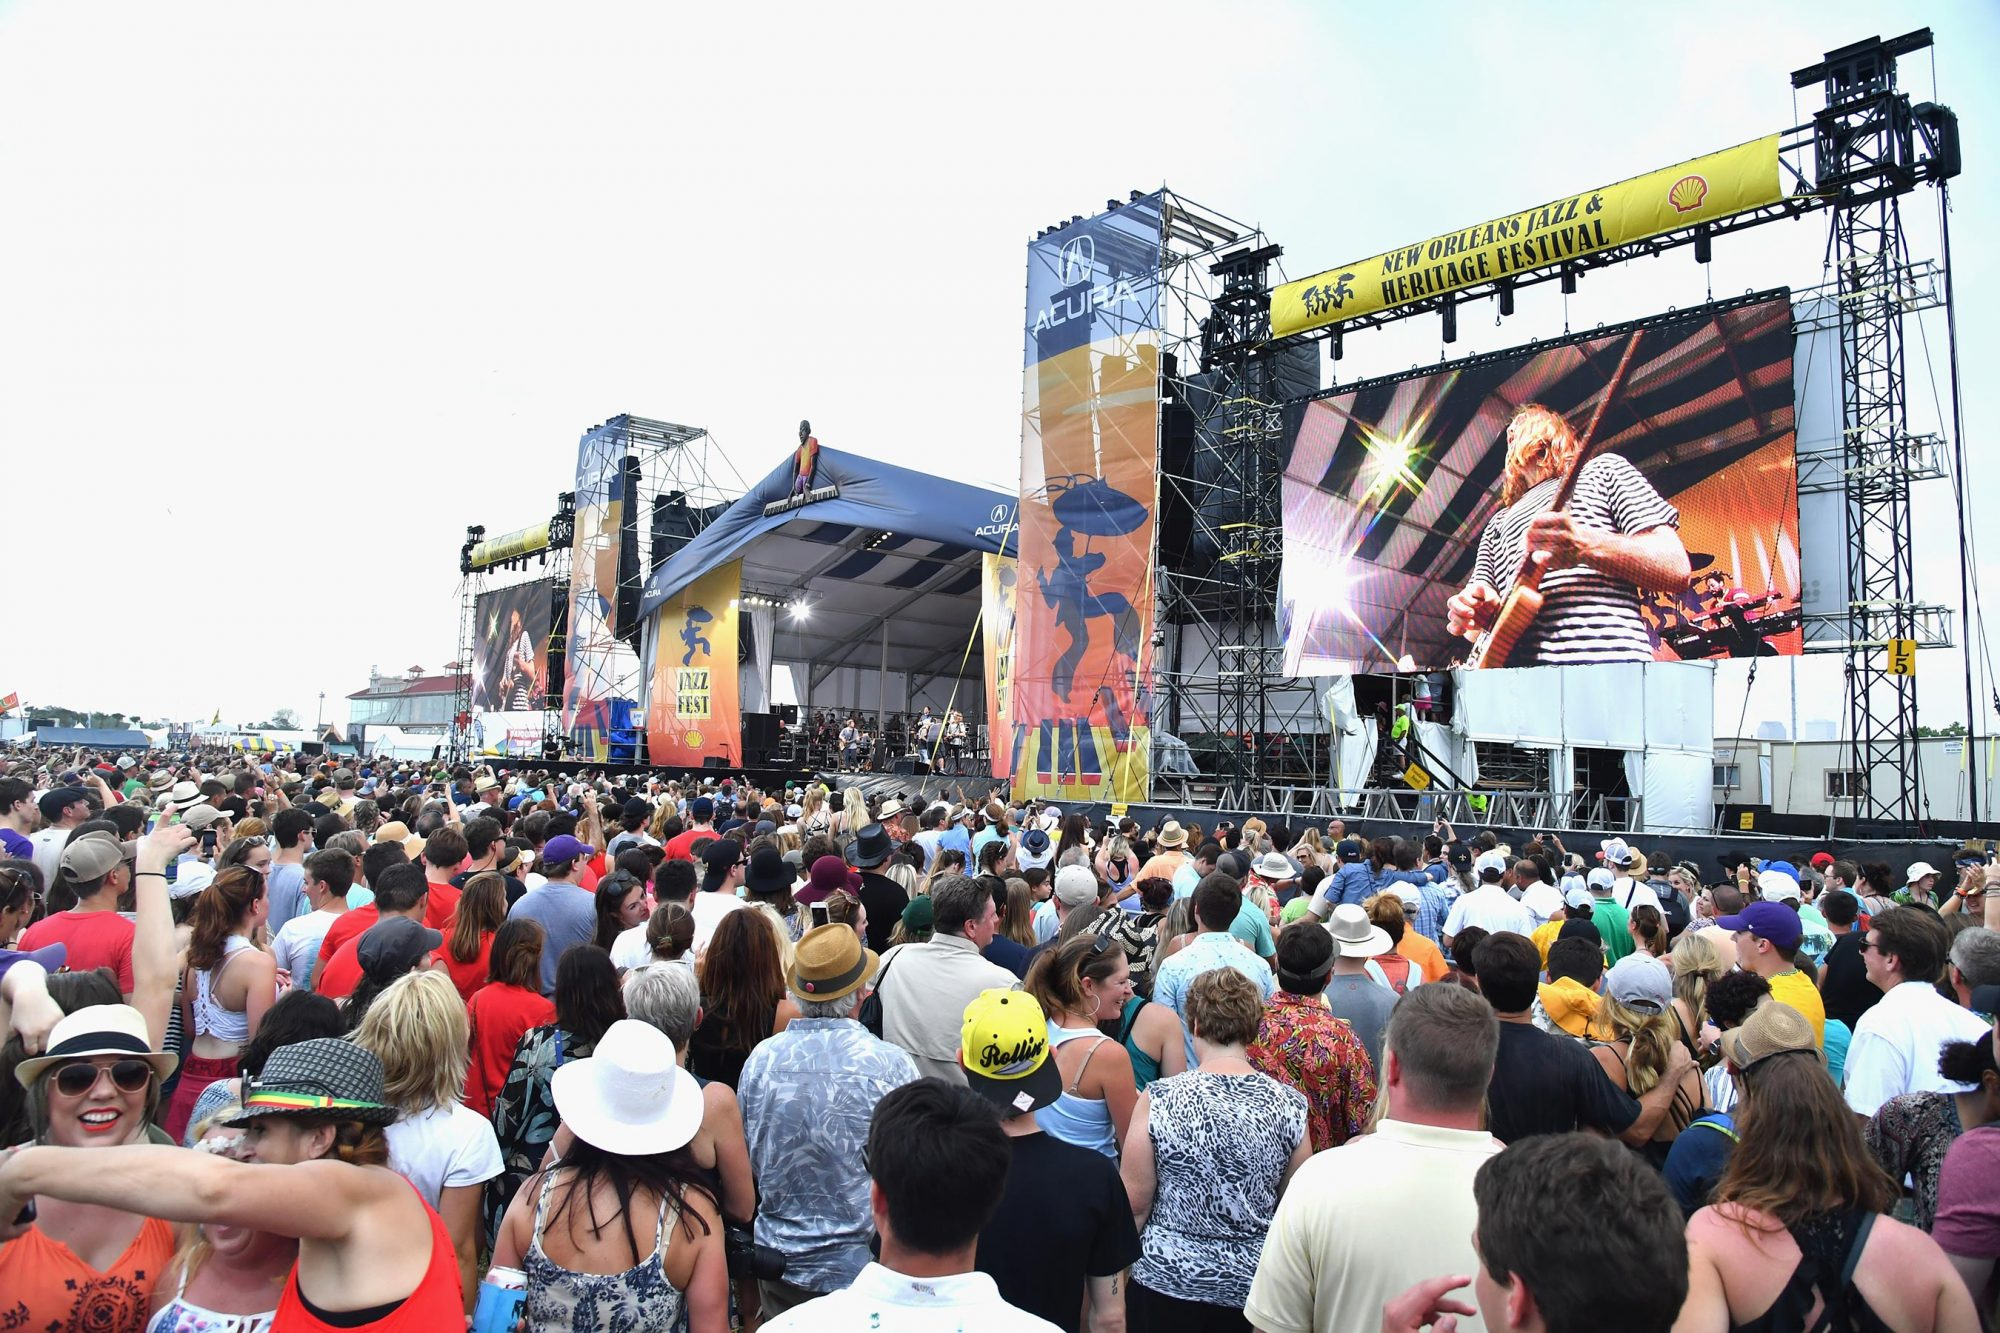 2017 New Orleans Jazz & Heritage Festival - Day 2